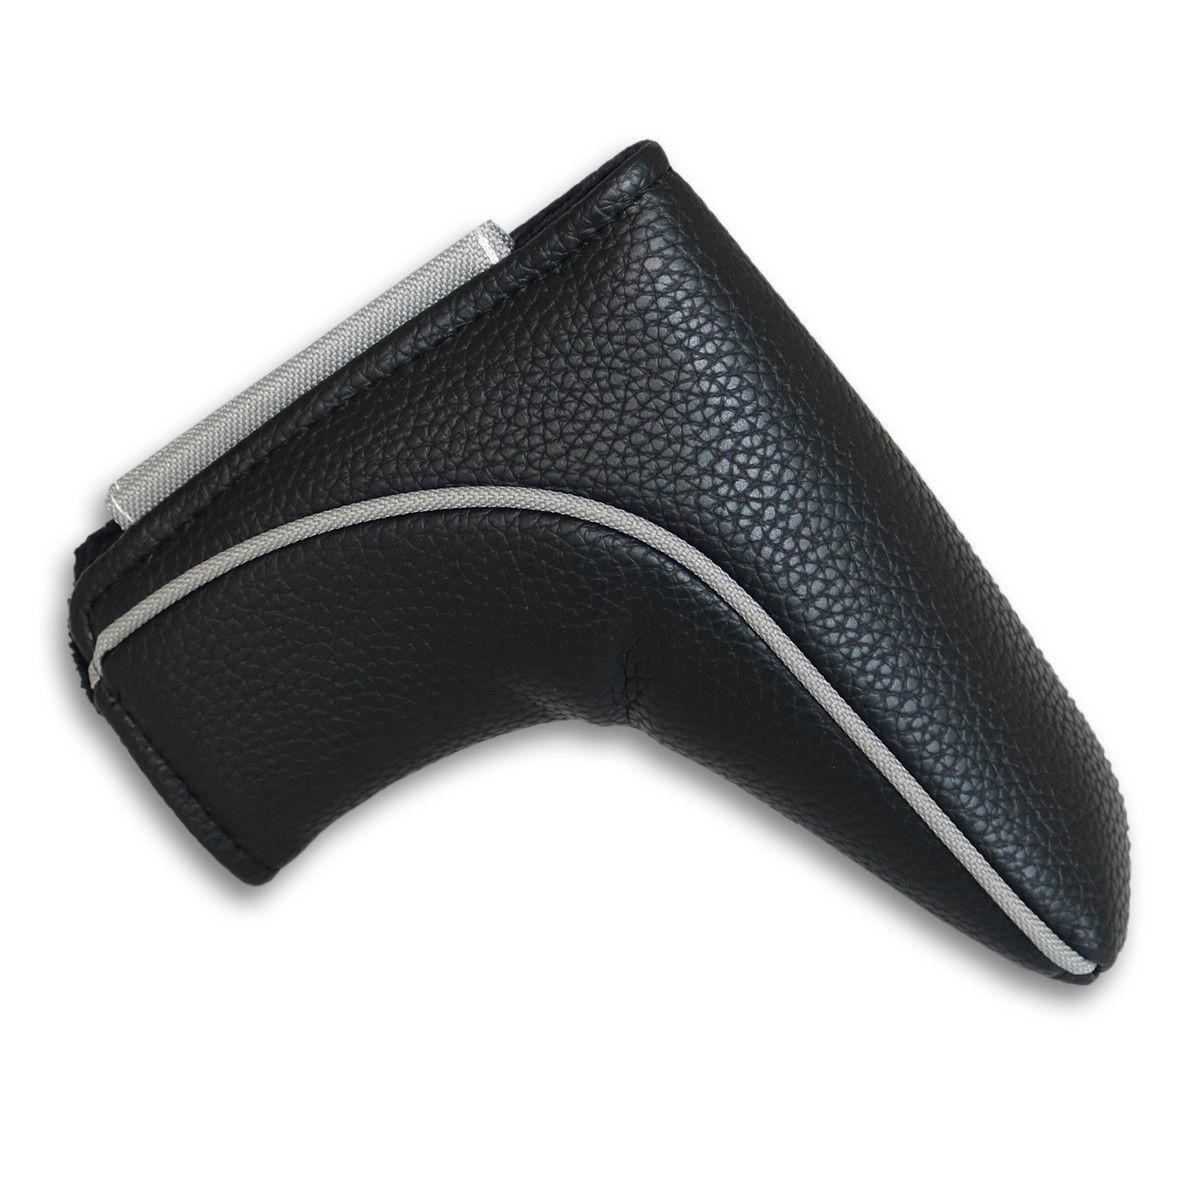 Black Headcover for Ping Scotty Cameron